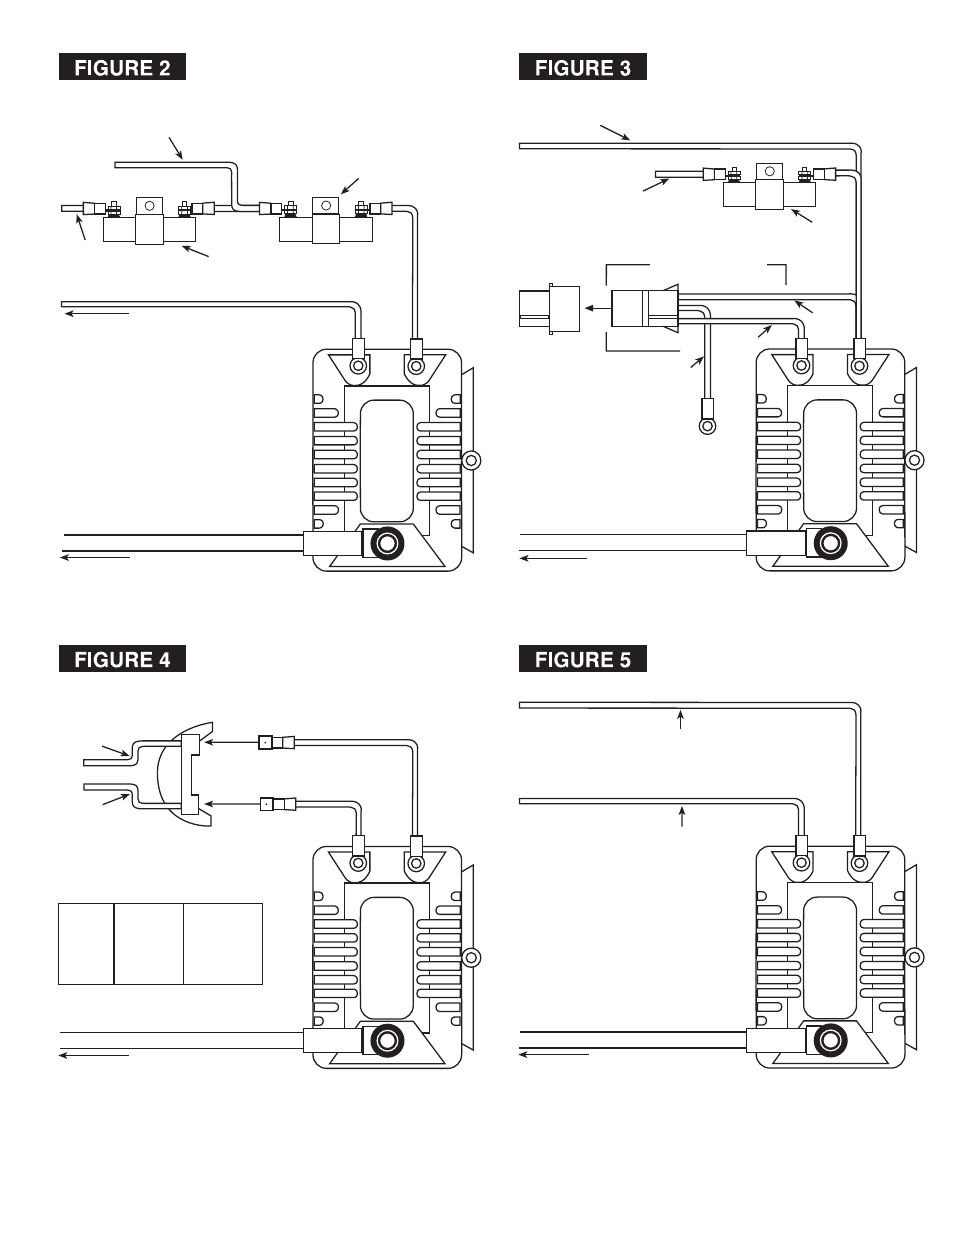 mallory ignition mallory promaster ignition coils and voltmaster mark ii ignition coils 28675_28720 page3 boss bv9967b wiring diagram boss ford, boss v plow wiring harness boss bv9967b wiring diagram at sewacar.co